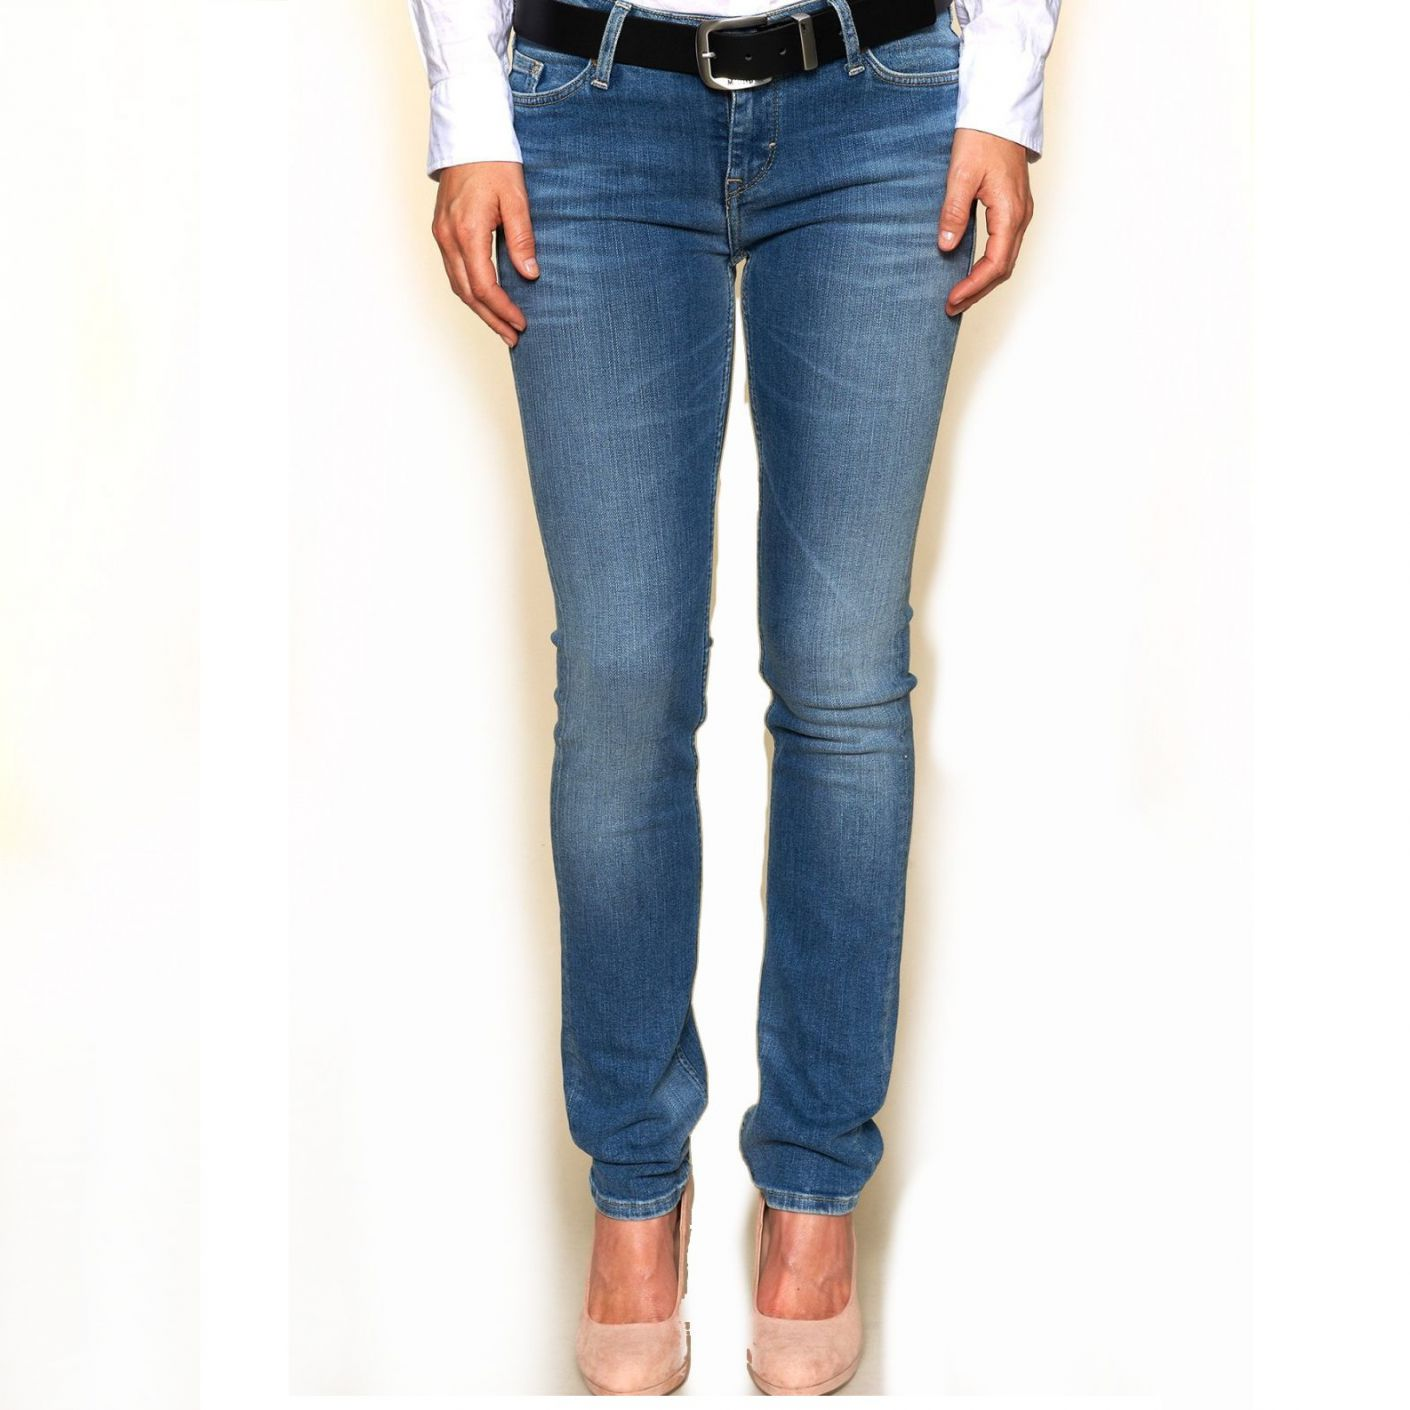 Mustang Jeans Jasmin Brushed Bleached 586-5039-512 27-30